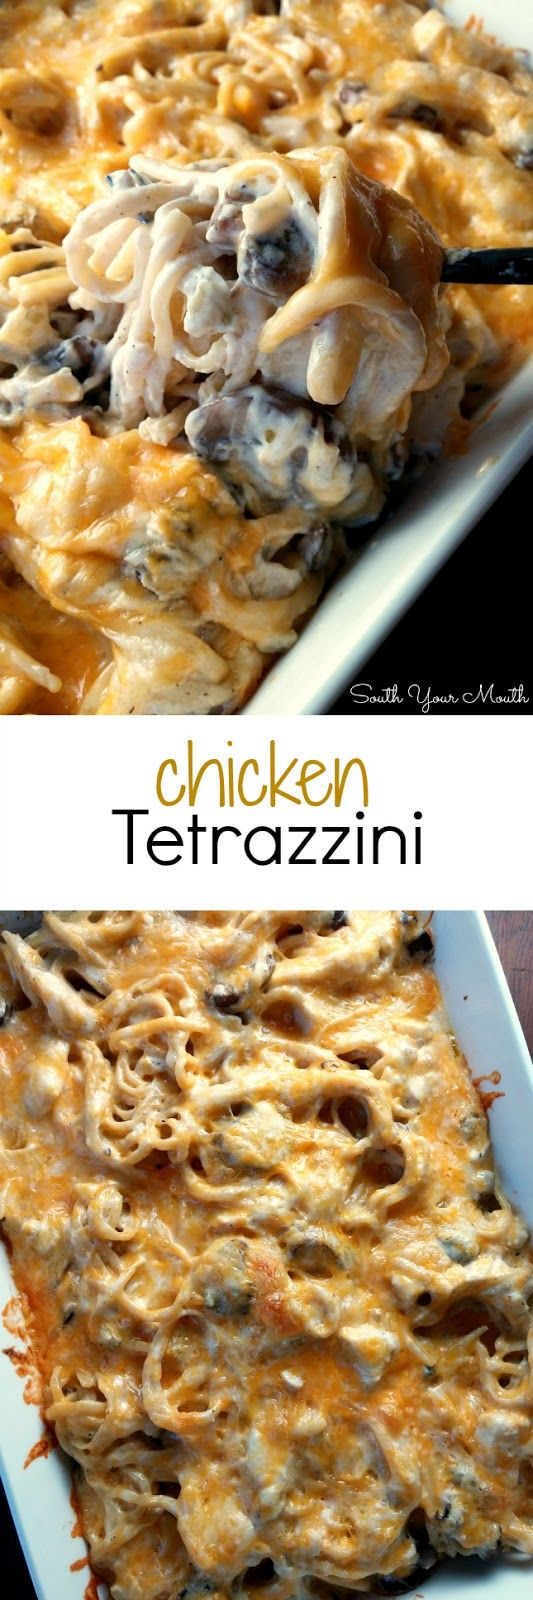 Chicken Tetrazzini with mushrooms and white wine